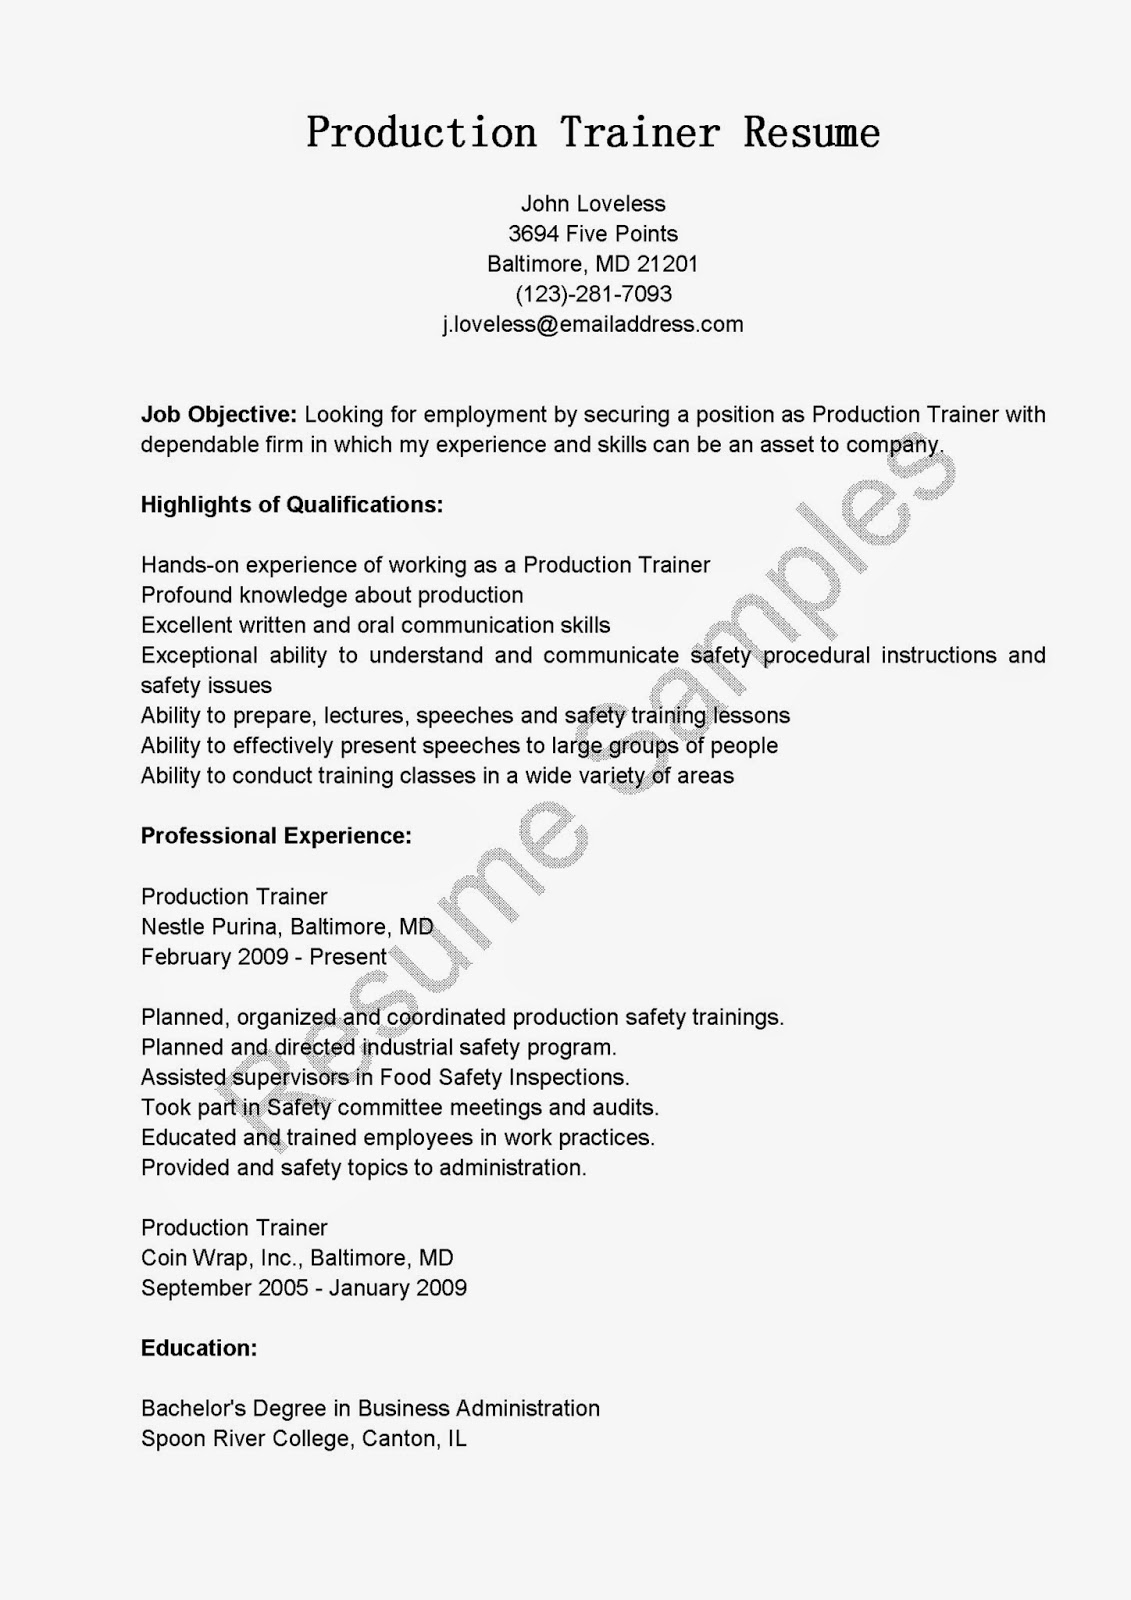 resume samples  production trainer resume sample